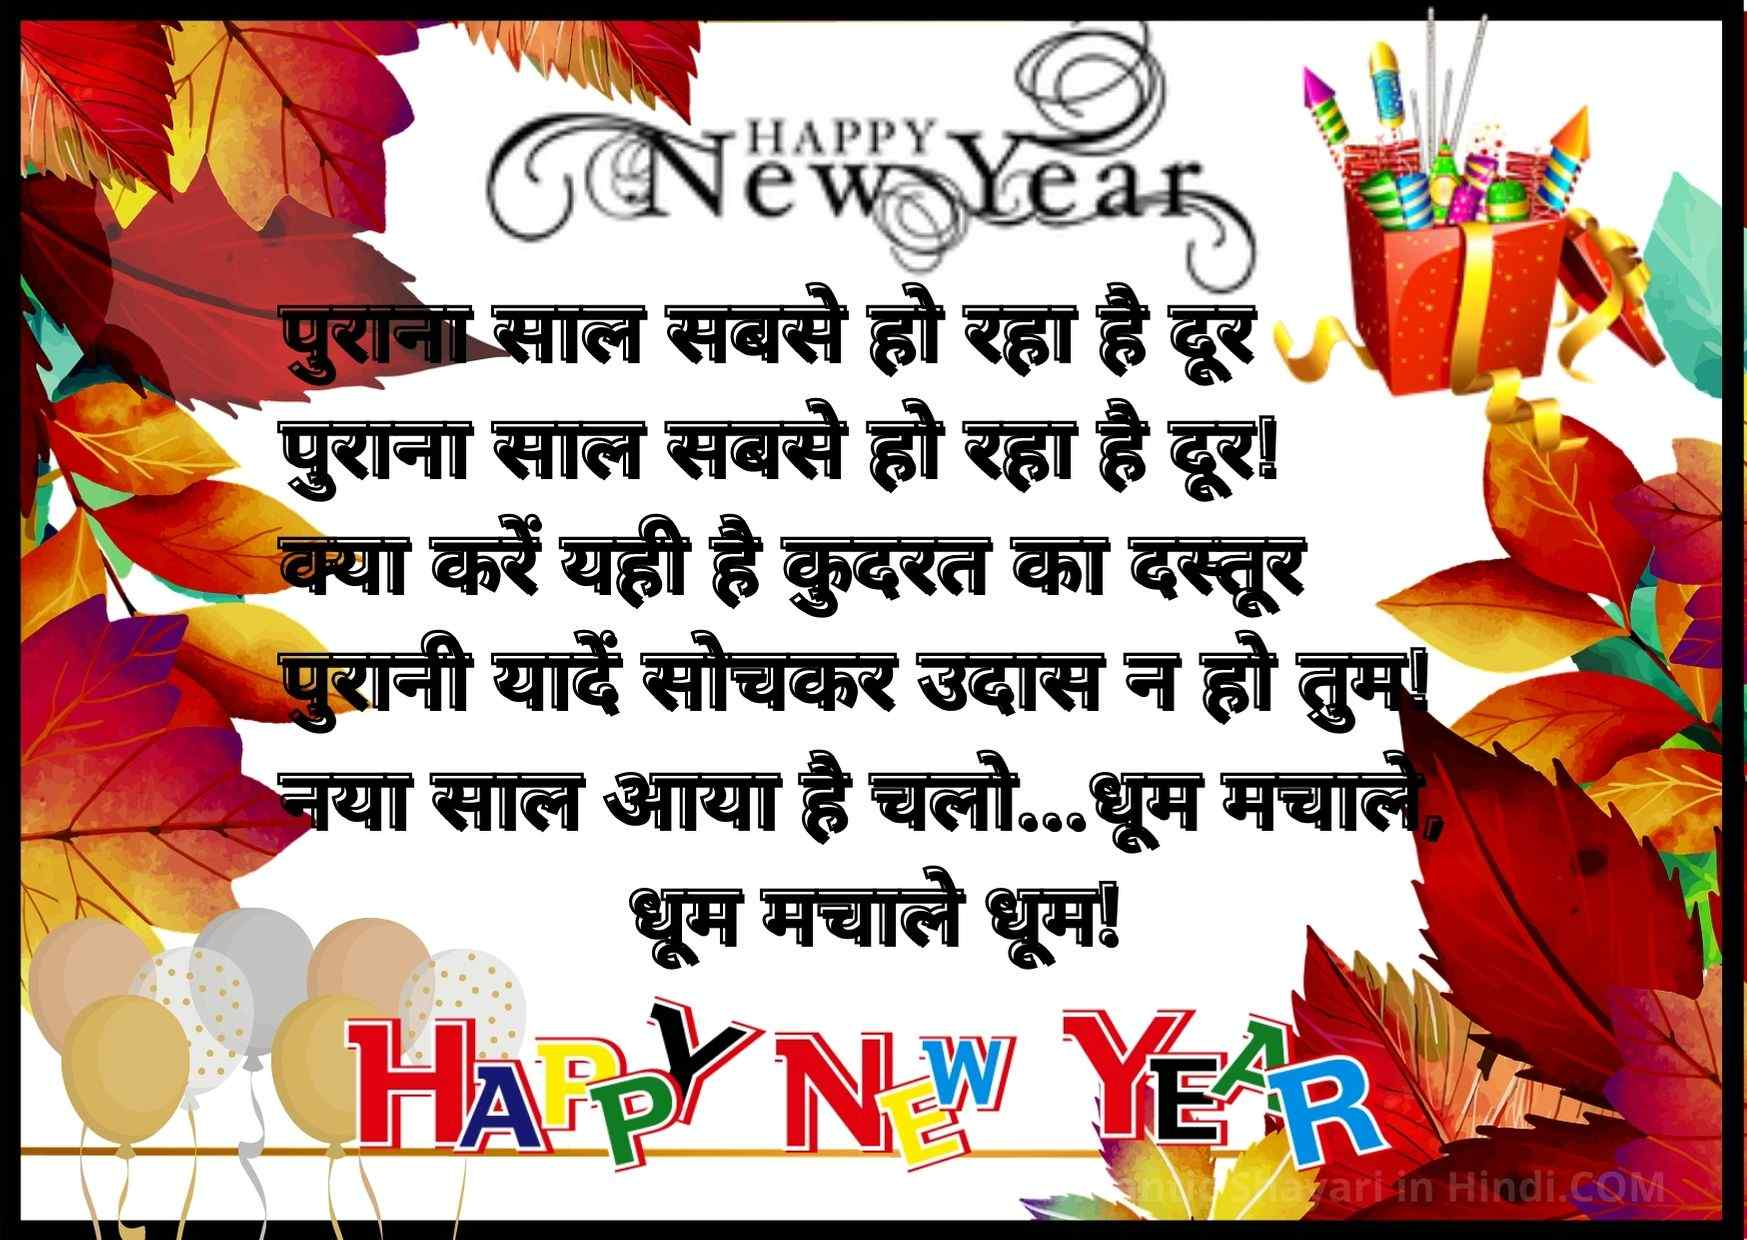 Happy New Year 2021 Images in Hindi